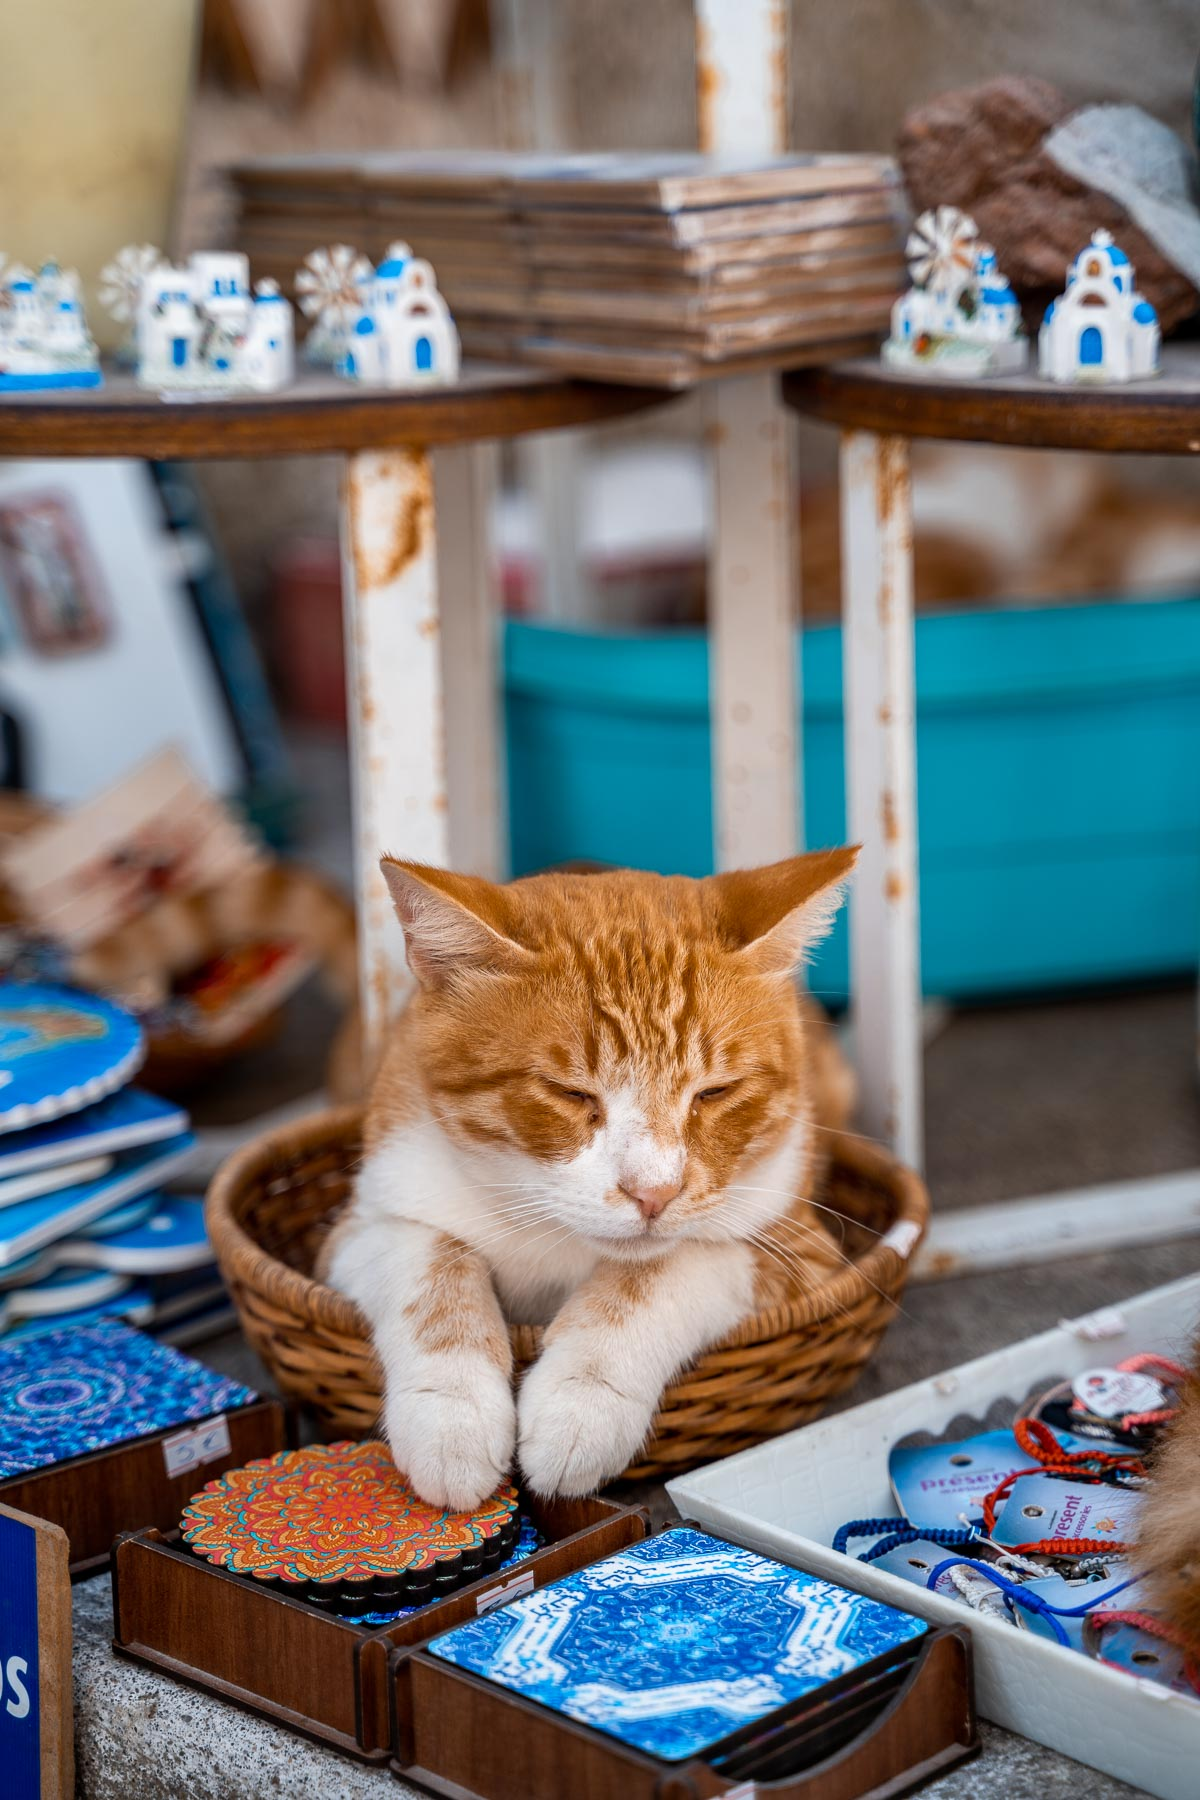 Cat sleeping on top of the souvenirs in Pyrgos, Greece